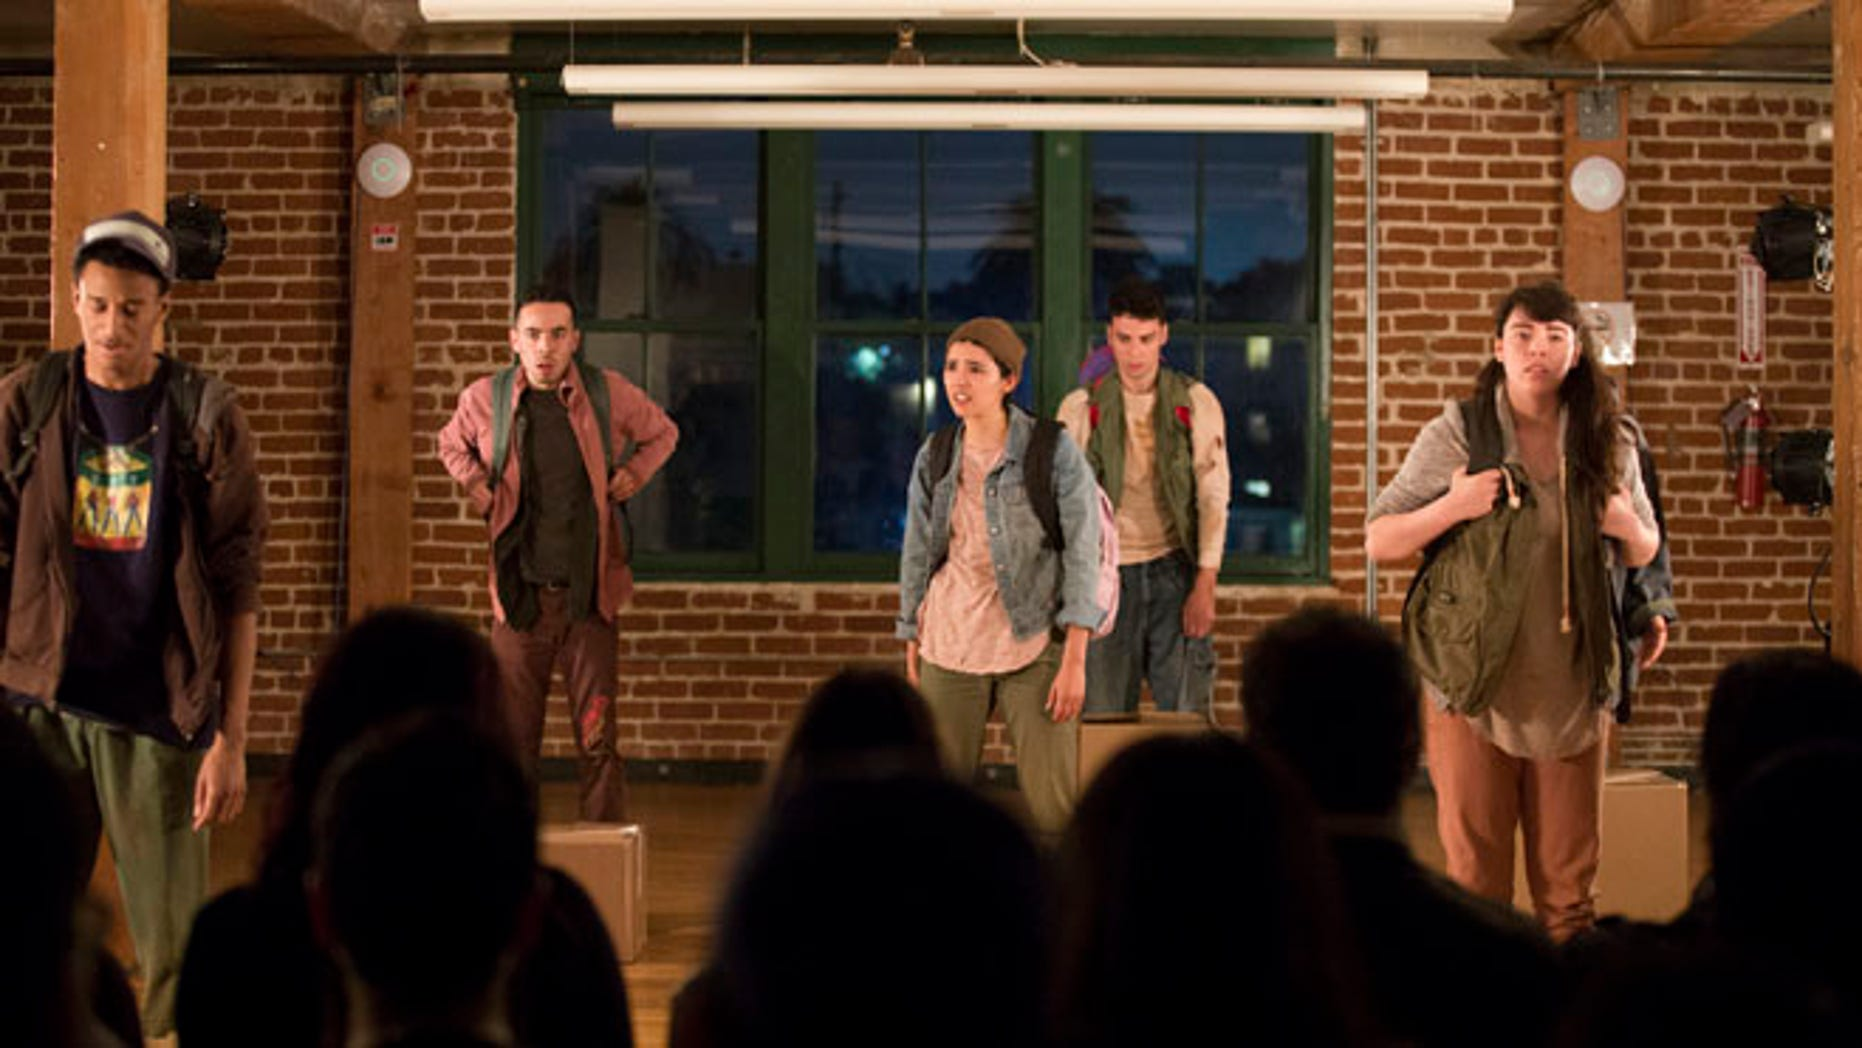 """In this Friday, March 18, 2016 photo, from left, actors Julien Moore, Julian Sandoval, Cynthia Callejas, Peter Mark and Audrey Olmos perform in the play """"Shelter"""" at CalArts Center for New Performance in Los Angeles. For Sandoval, the play """"Shelter"""" is more than just a story of children flooding into the U.S. by the tens of thousands from Latin America in search of safe sanctuary. It's personal. The young actor's mother immigrated to the U.S. illegally years ago, fleeing the violence of her native El Salvador after seeing a cousin hacked to death by soldiers with machetes during the country's civil war. She would become a legal resident under the Immigration Reform and Control Act of 1986 and eventually a U.S. citizen. (AP Photo/ Jenna Schoenefeld)"""